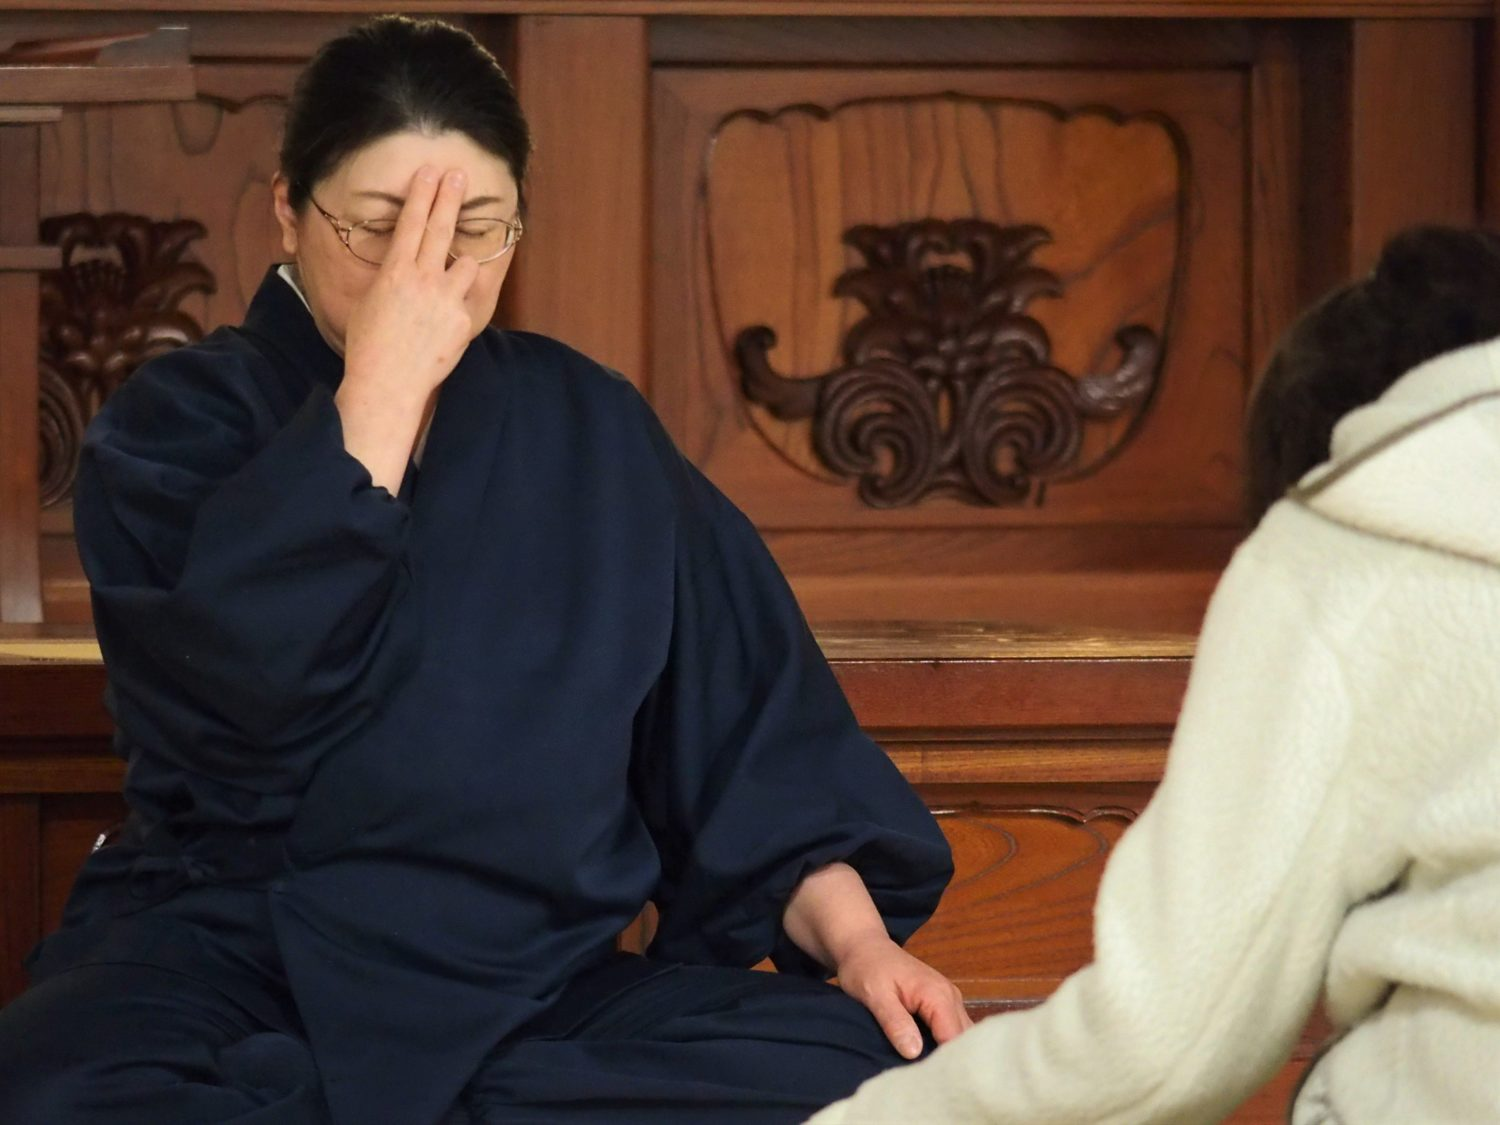 Being taught how to meditate by a female monk